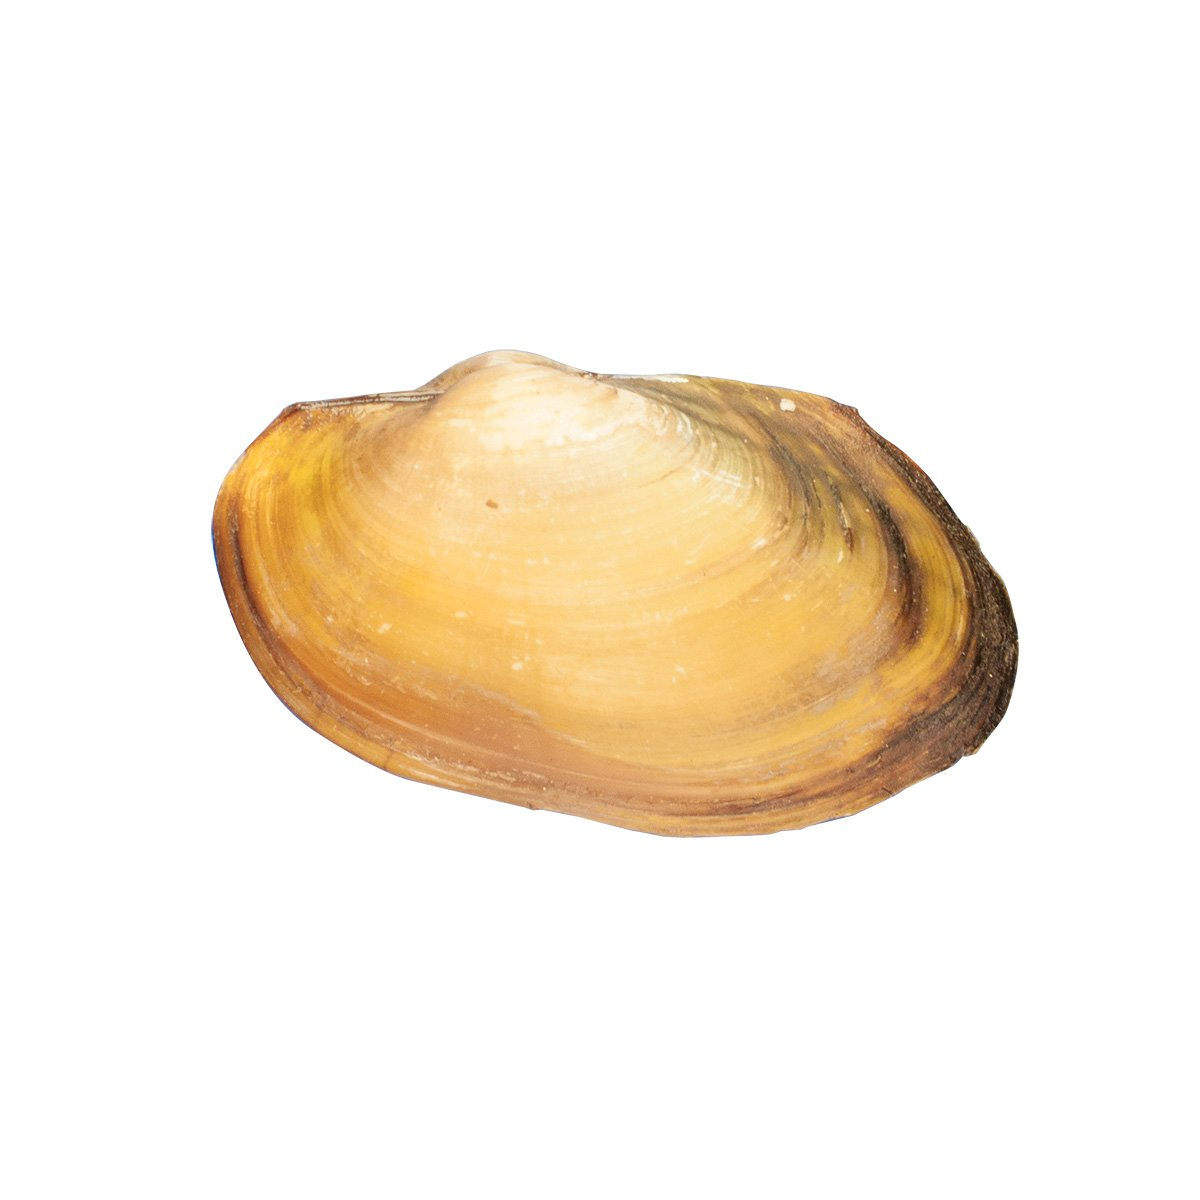 clam dissection diagram you can create a database for preserved clams in biology and life science